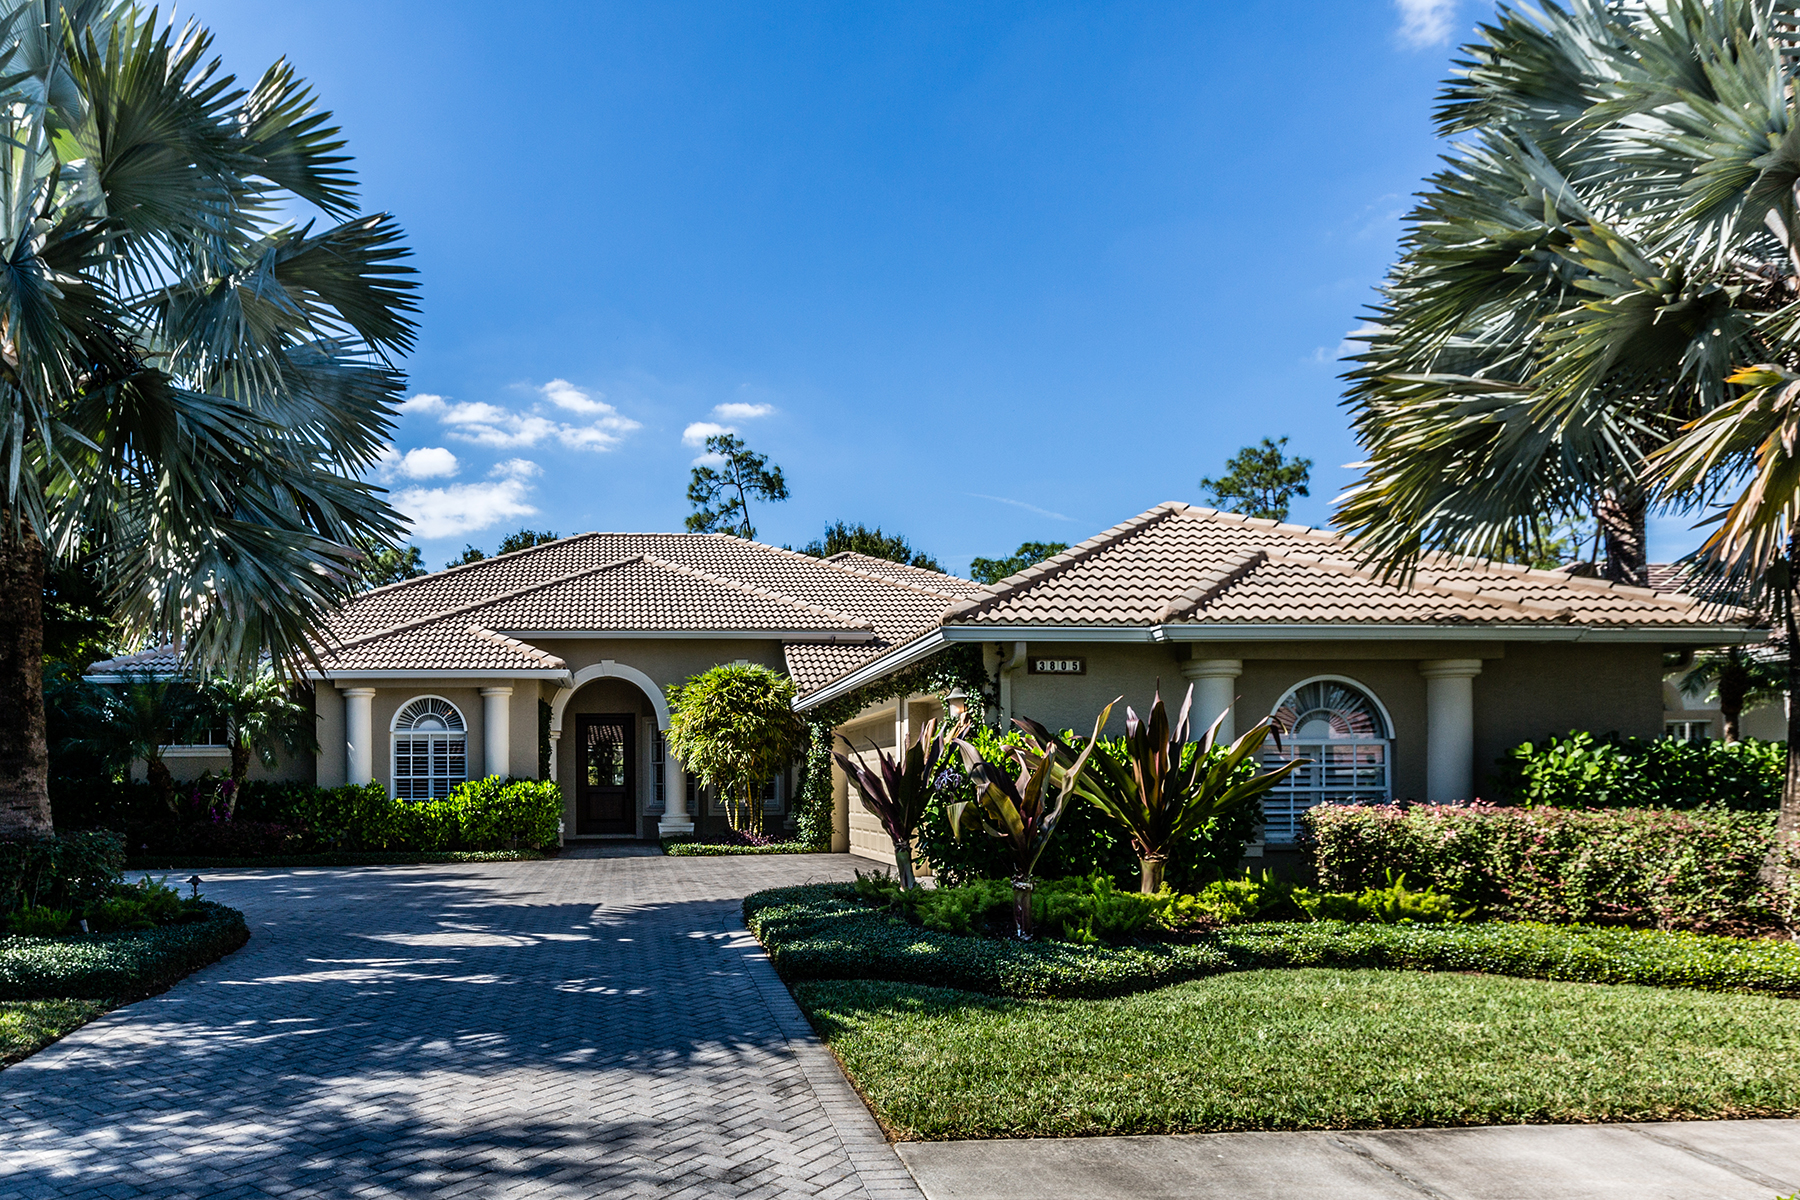 Single Family Home for Sale at NAPLES - CEDAR HAMMOCK 3805 Wax Myrtle, Naples, Florida 34112 United States